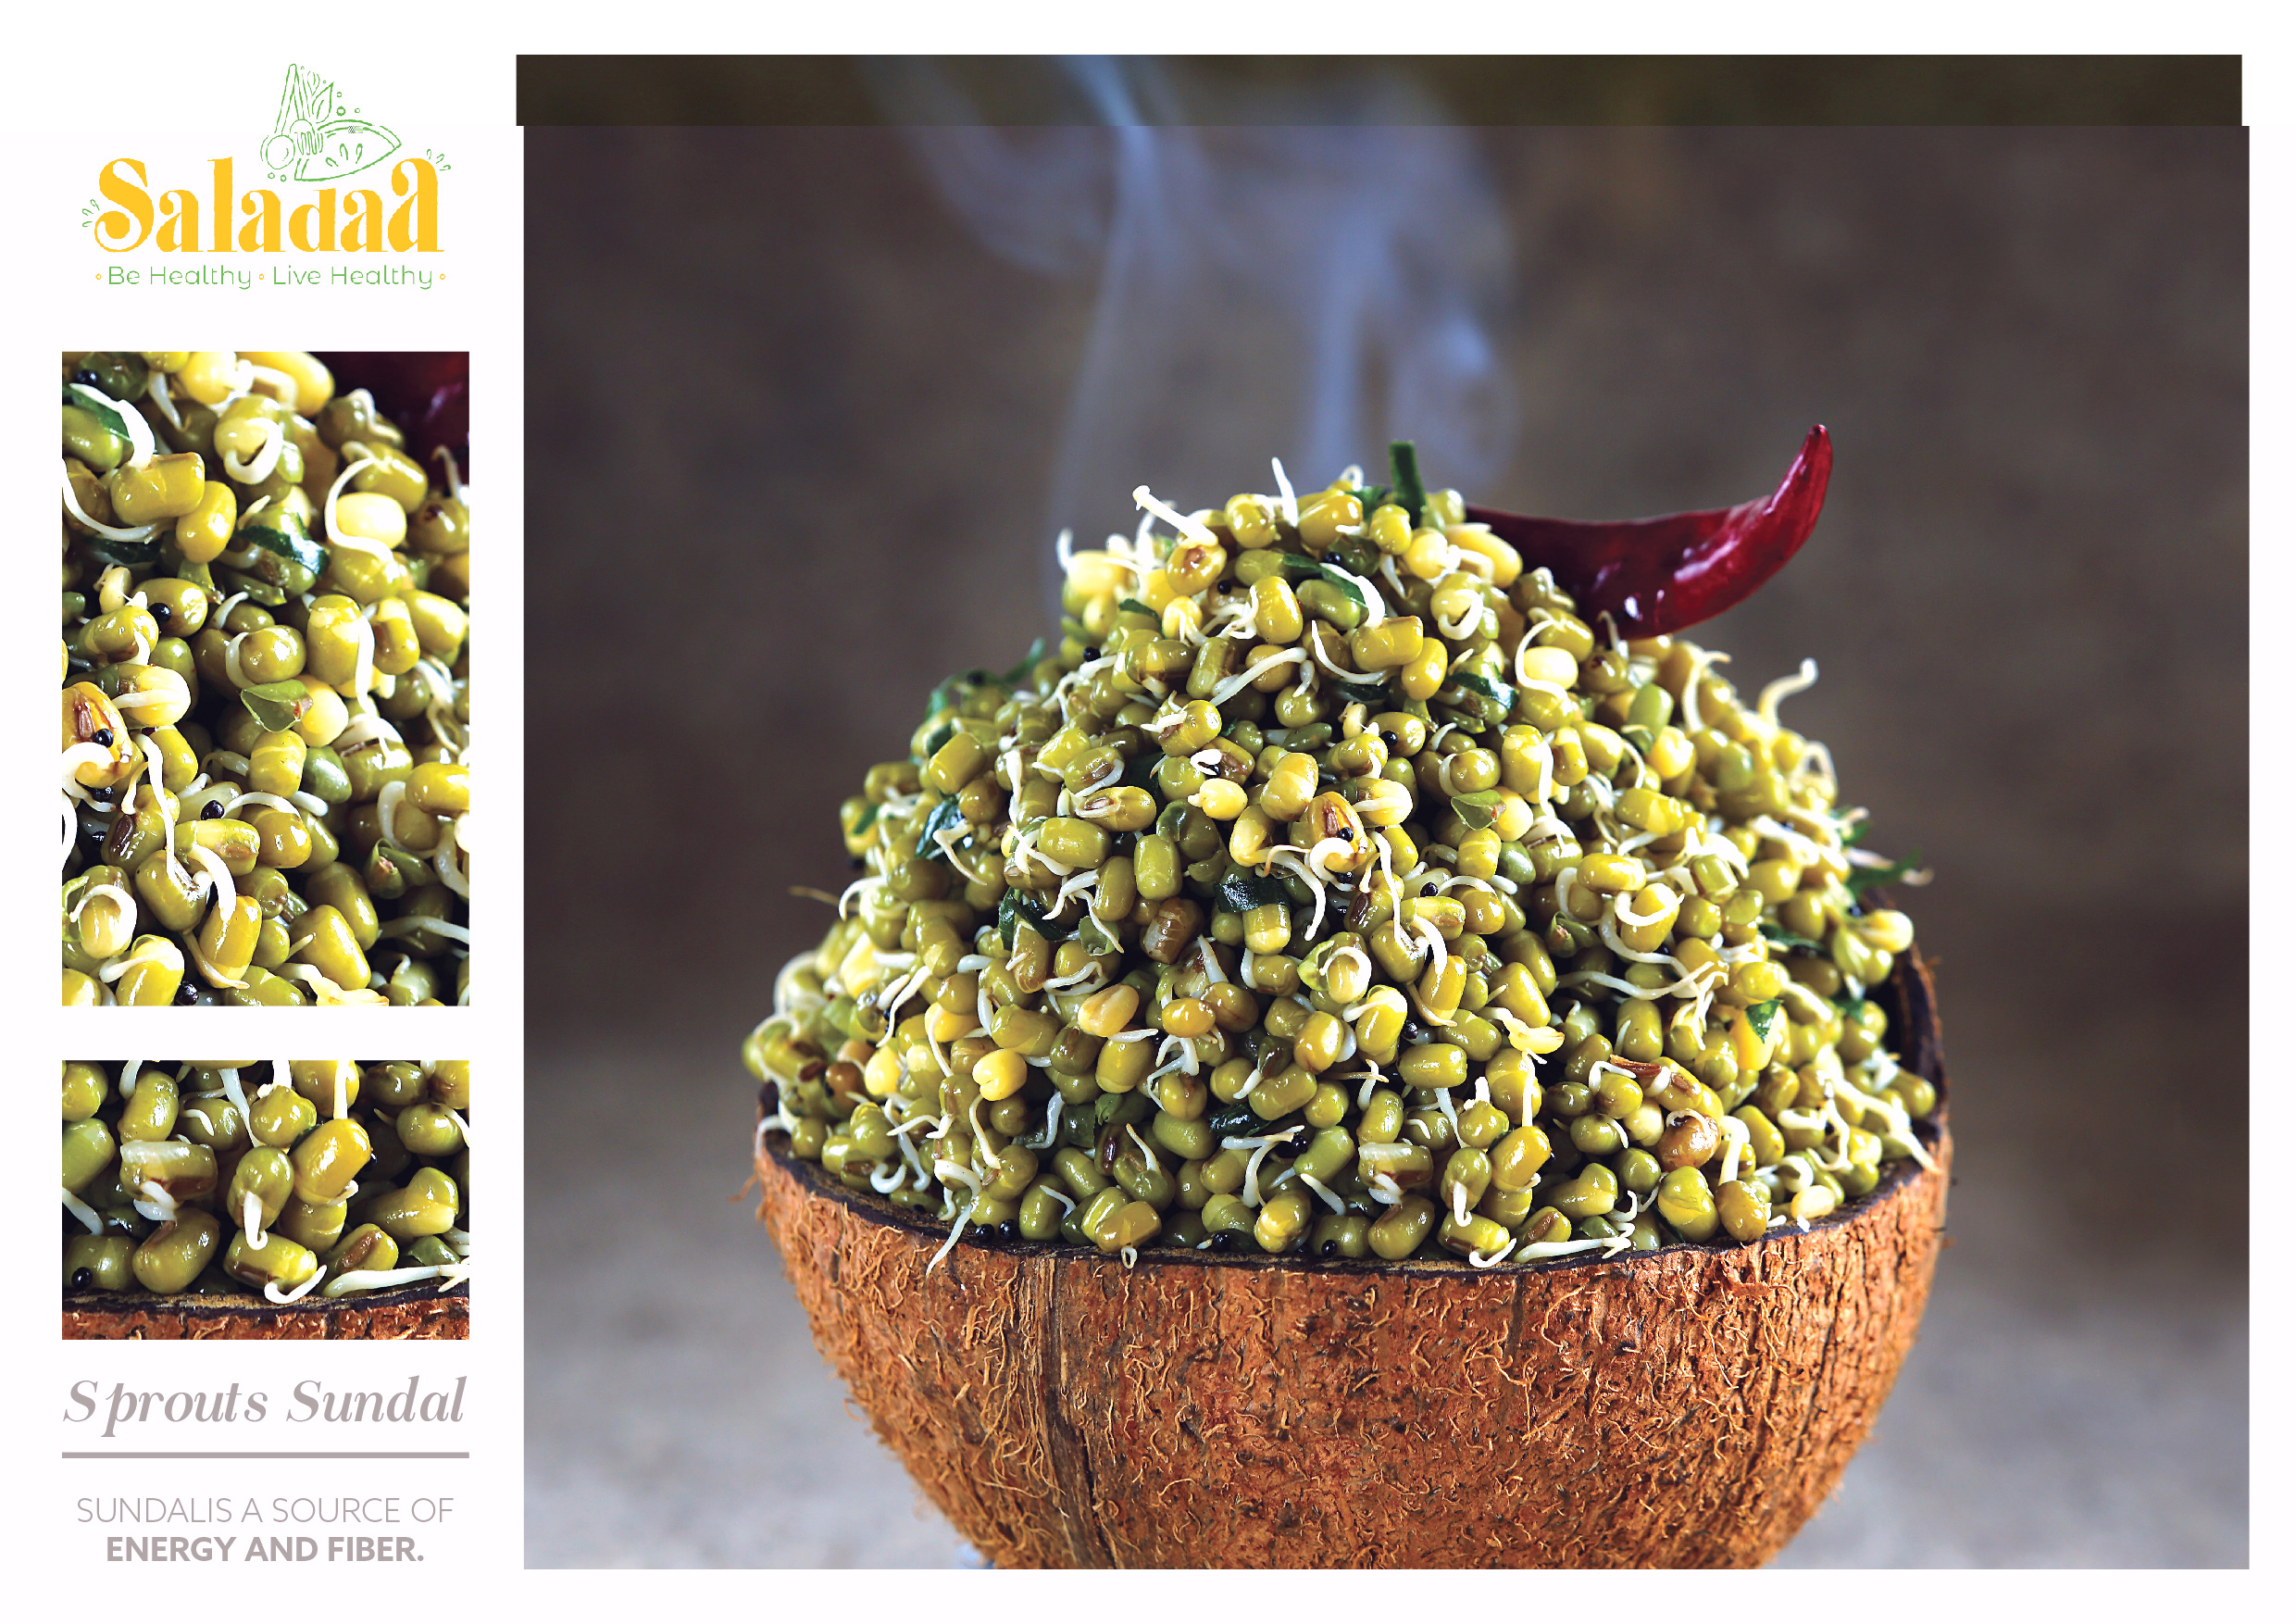 Sprouts Sundals